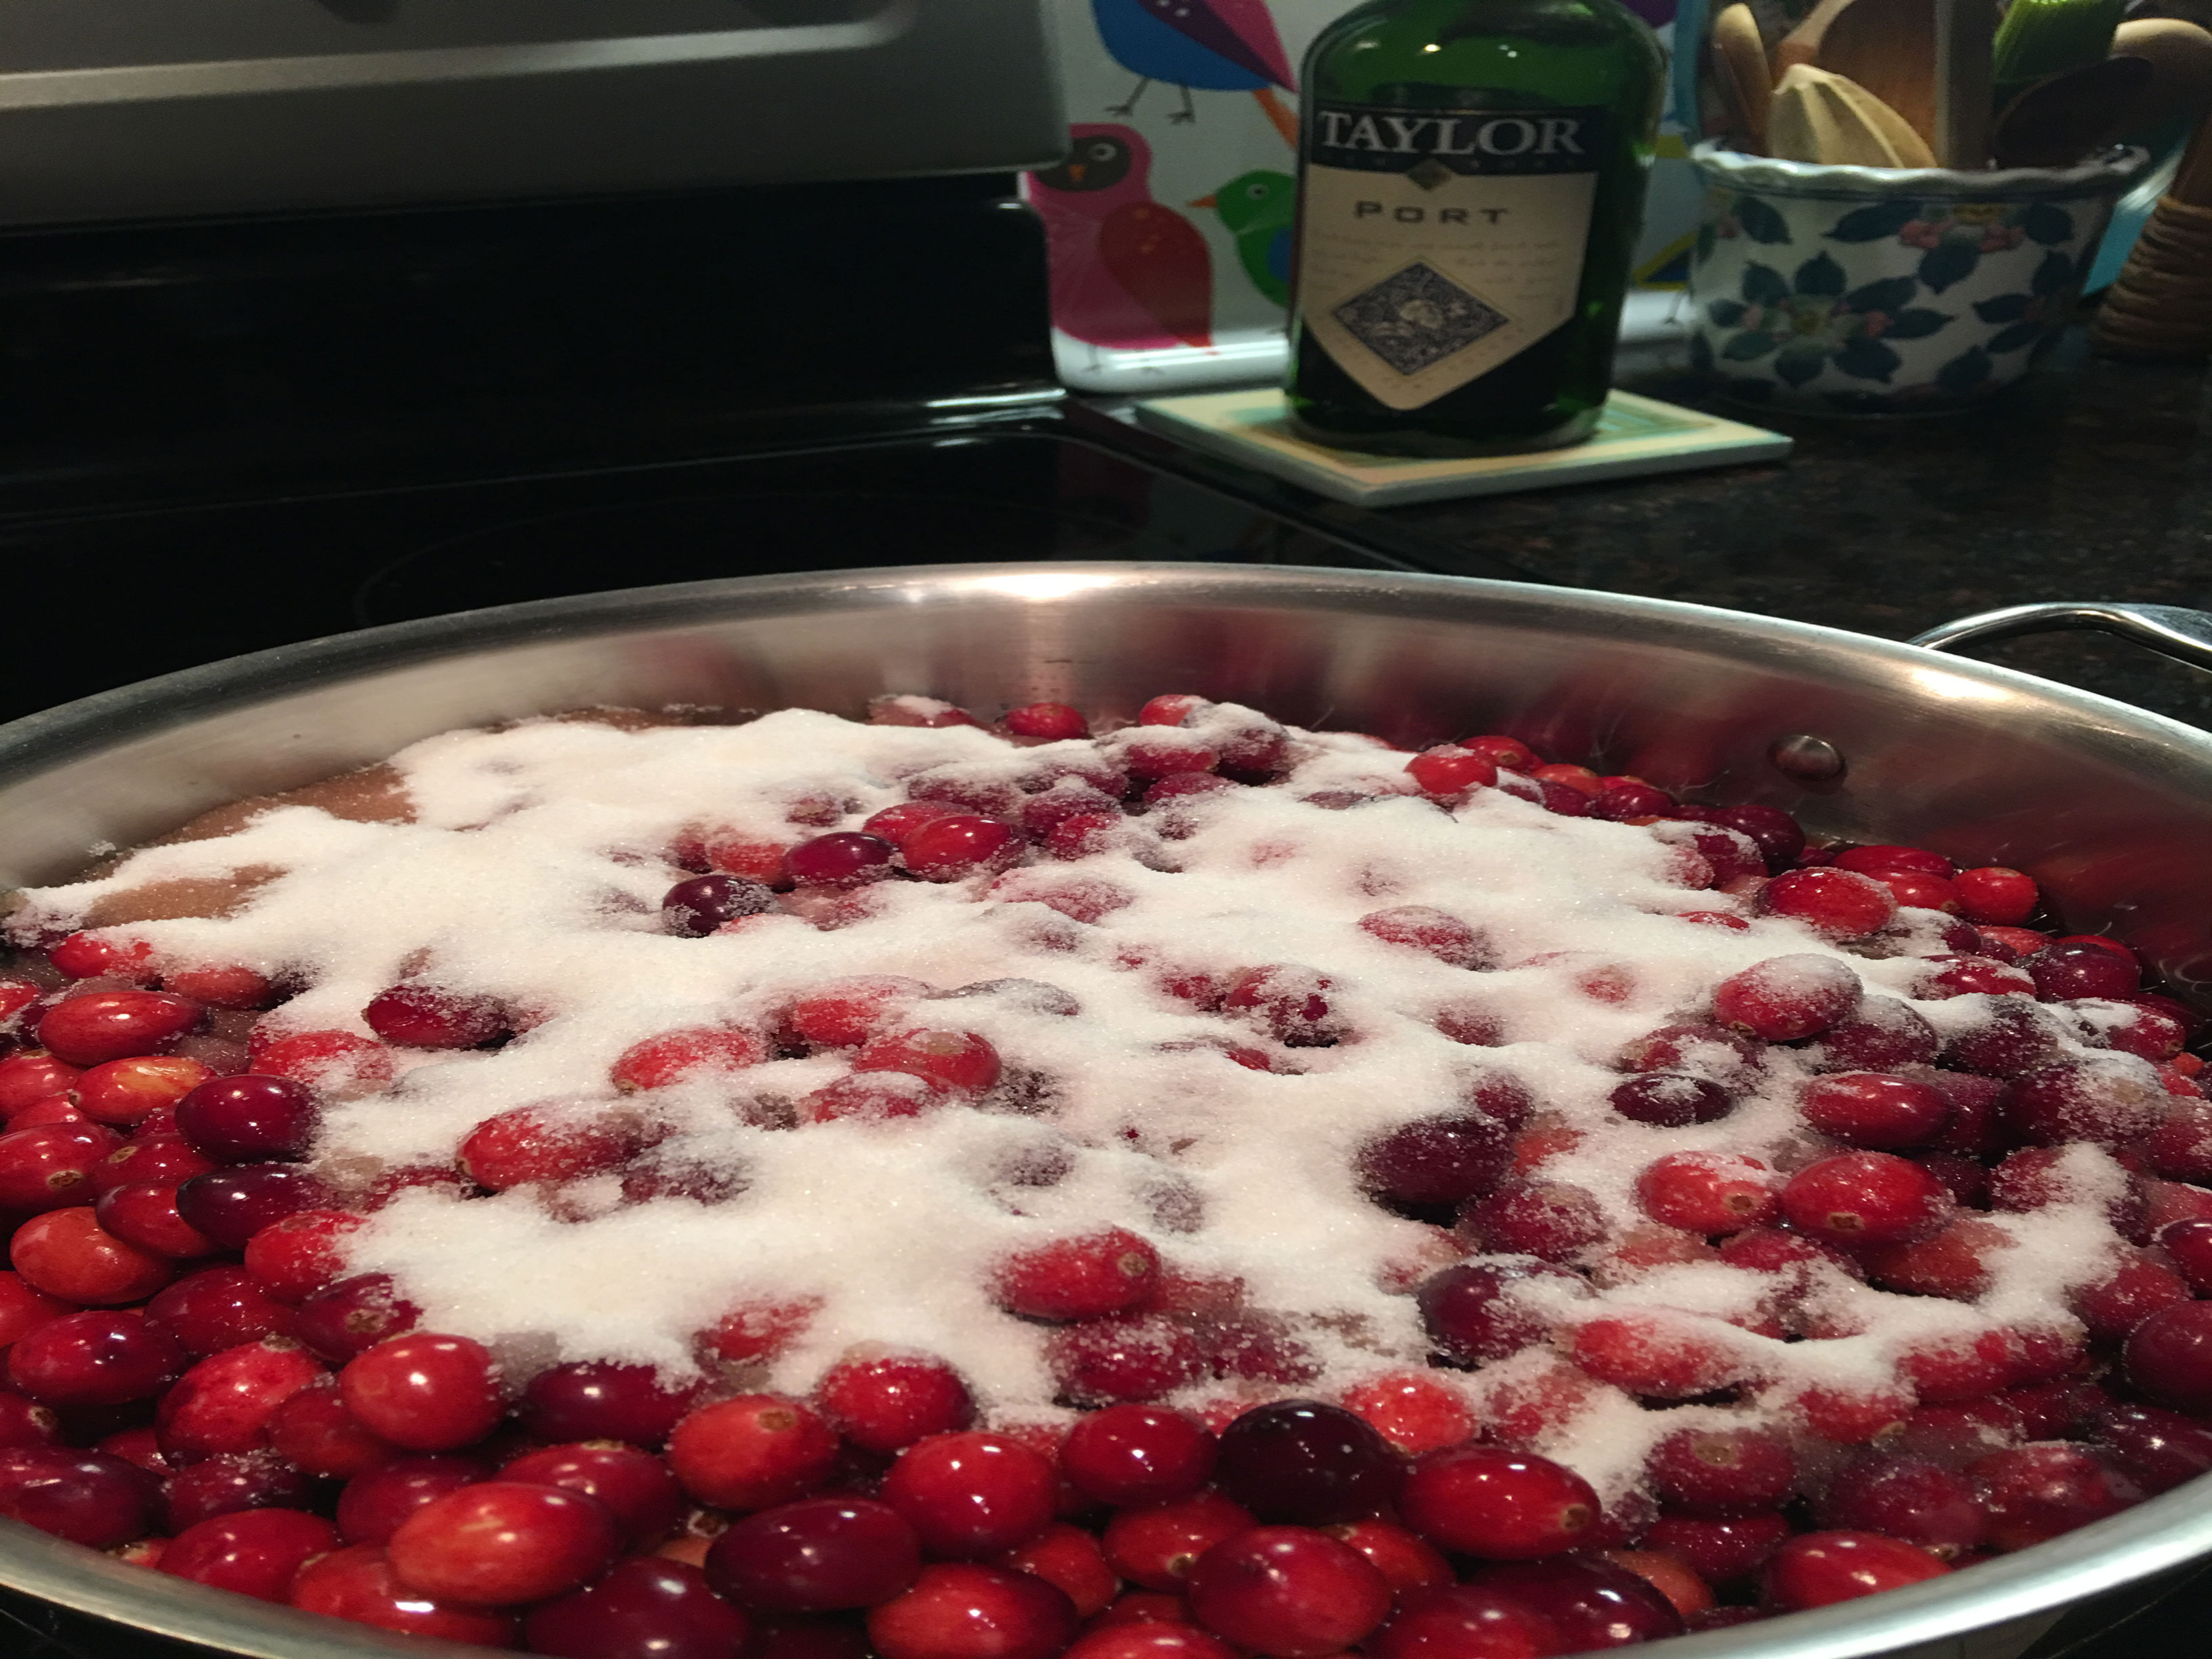 Cranberries in Port Recipe